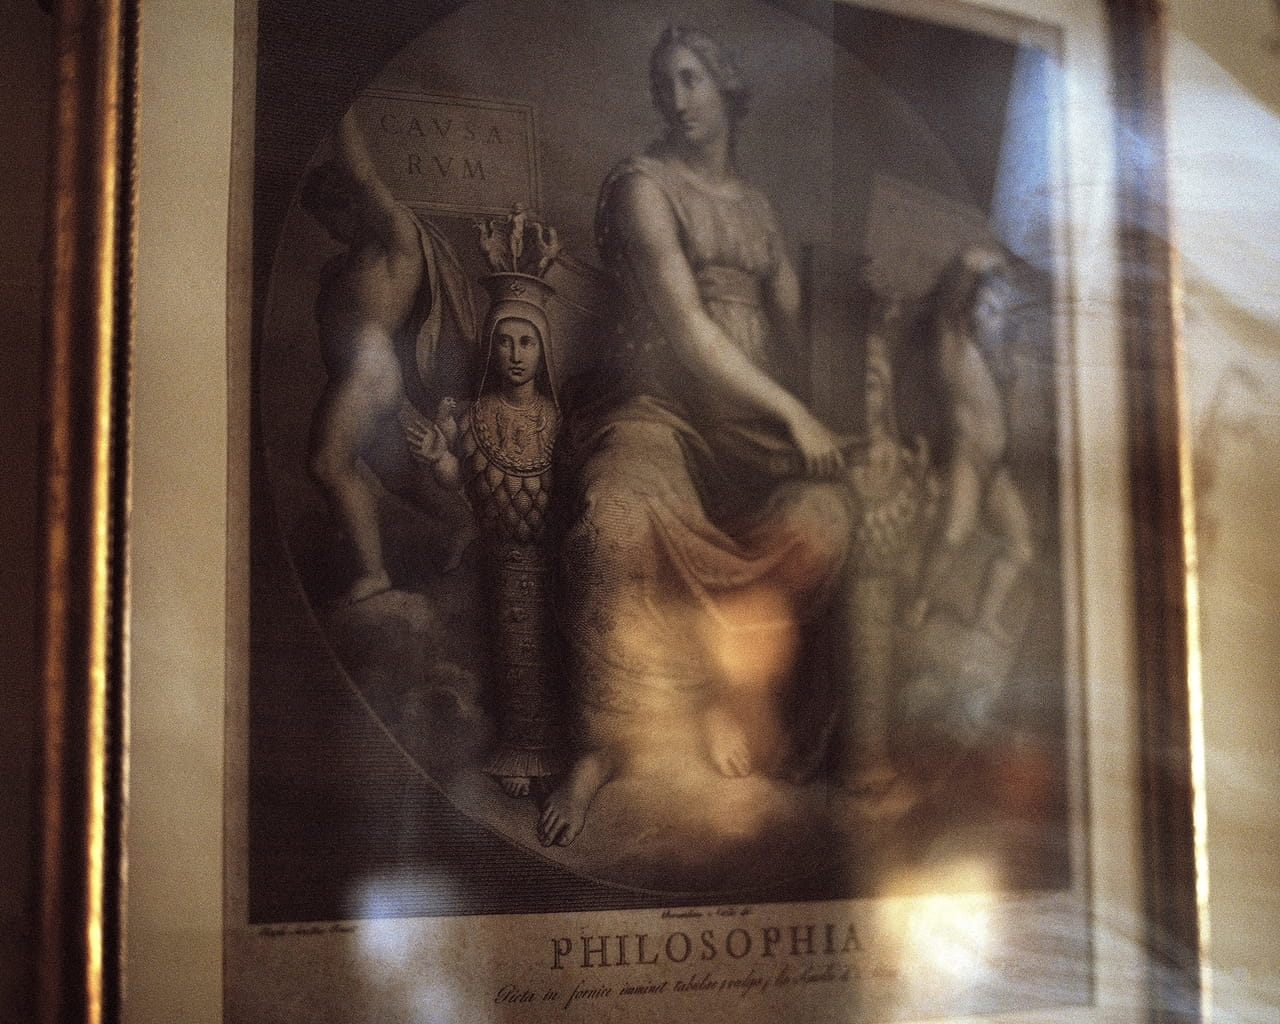 Philosophia, Ralph Waldo Emerson's Study, From the Collection of The Ralph Waldo Emerson Memorial Association at the Concord Museum